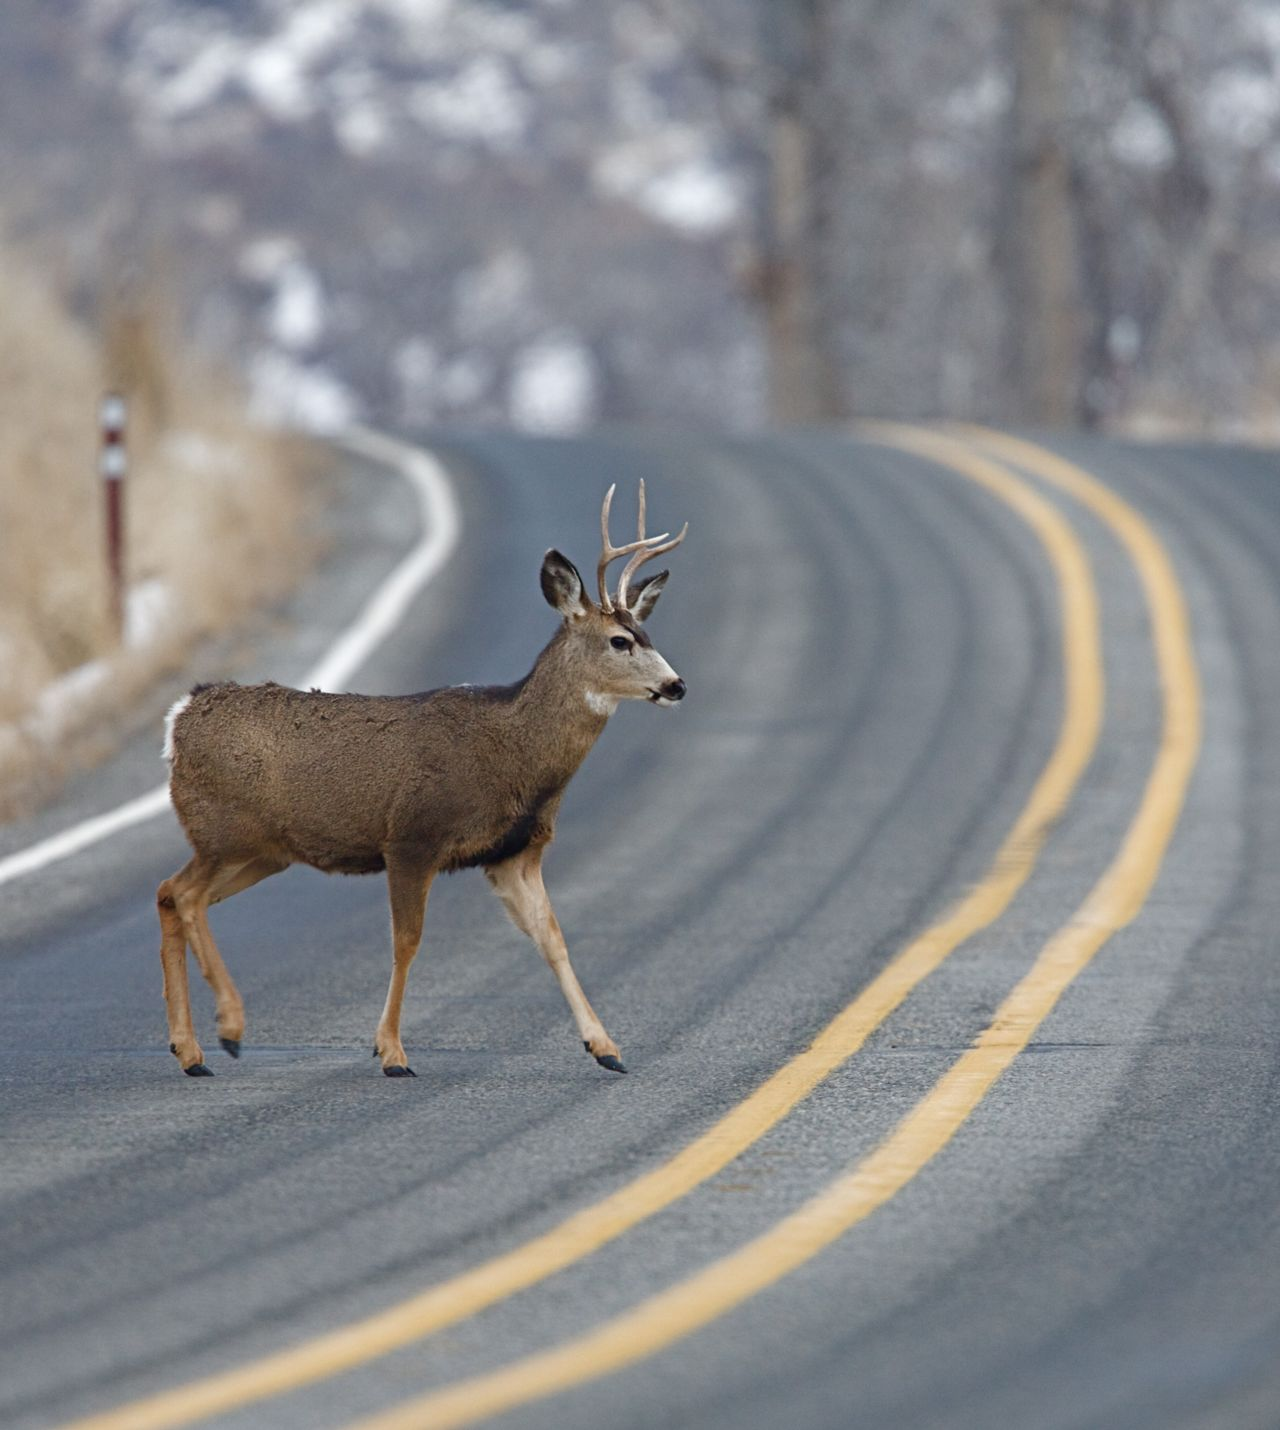 Deer-Car Accidents